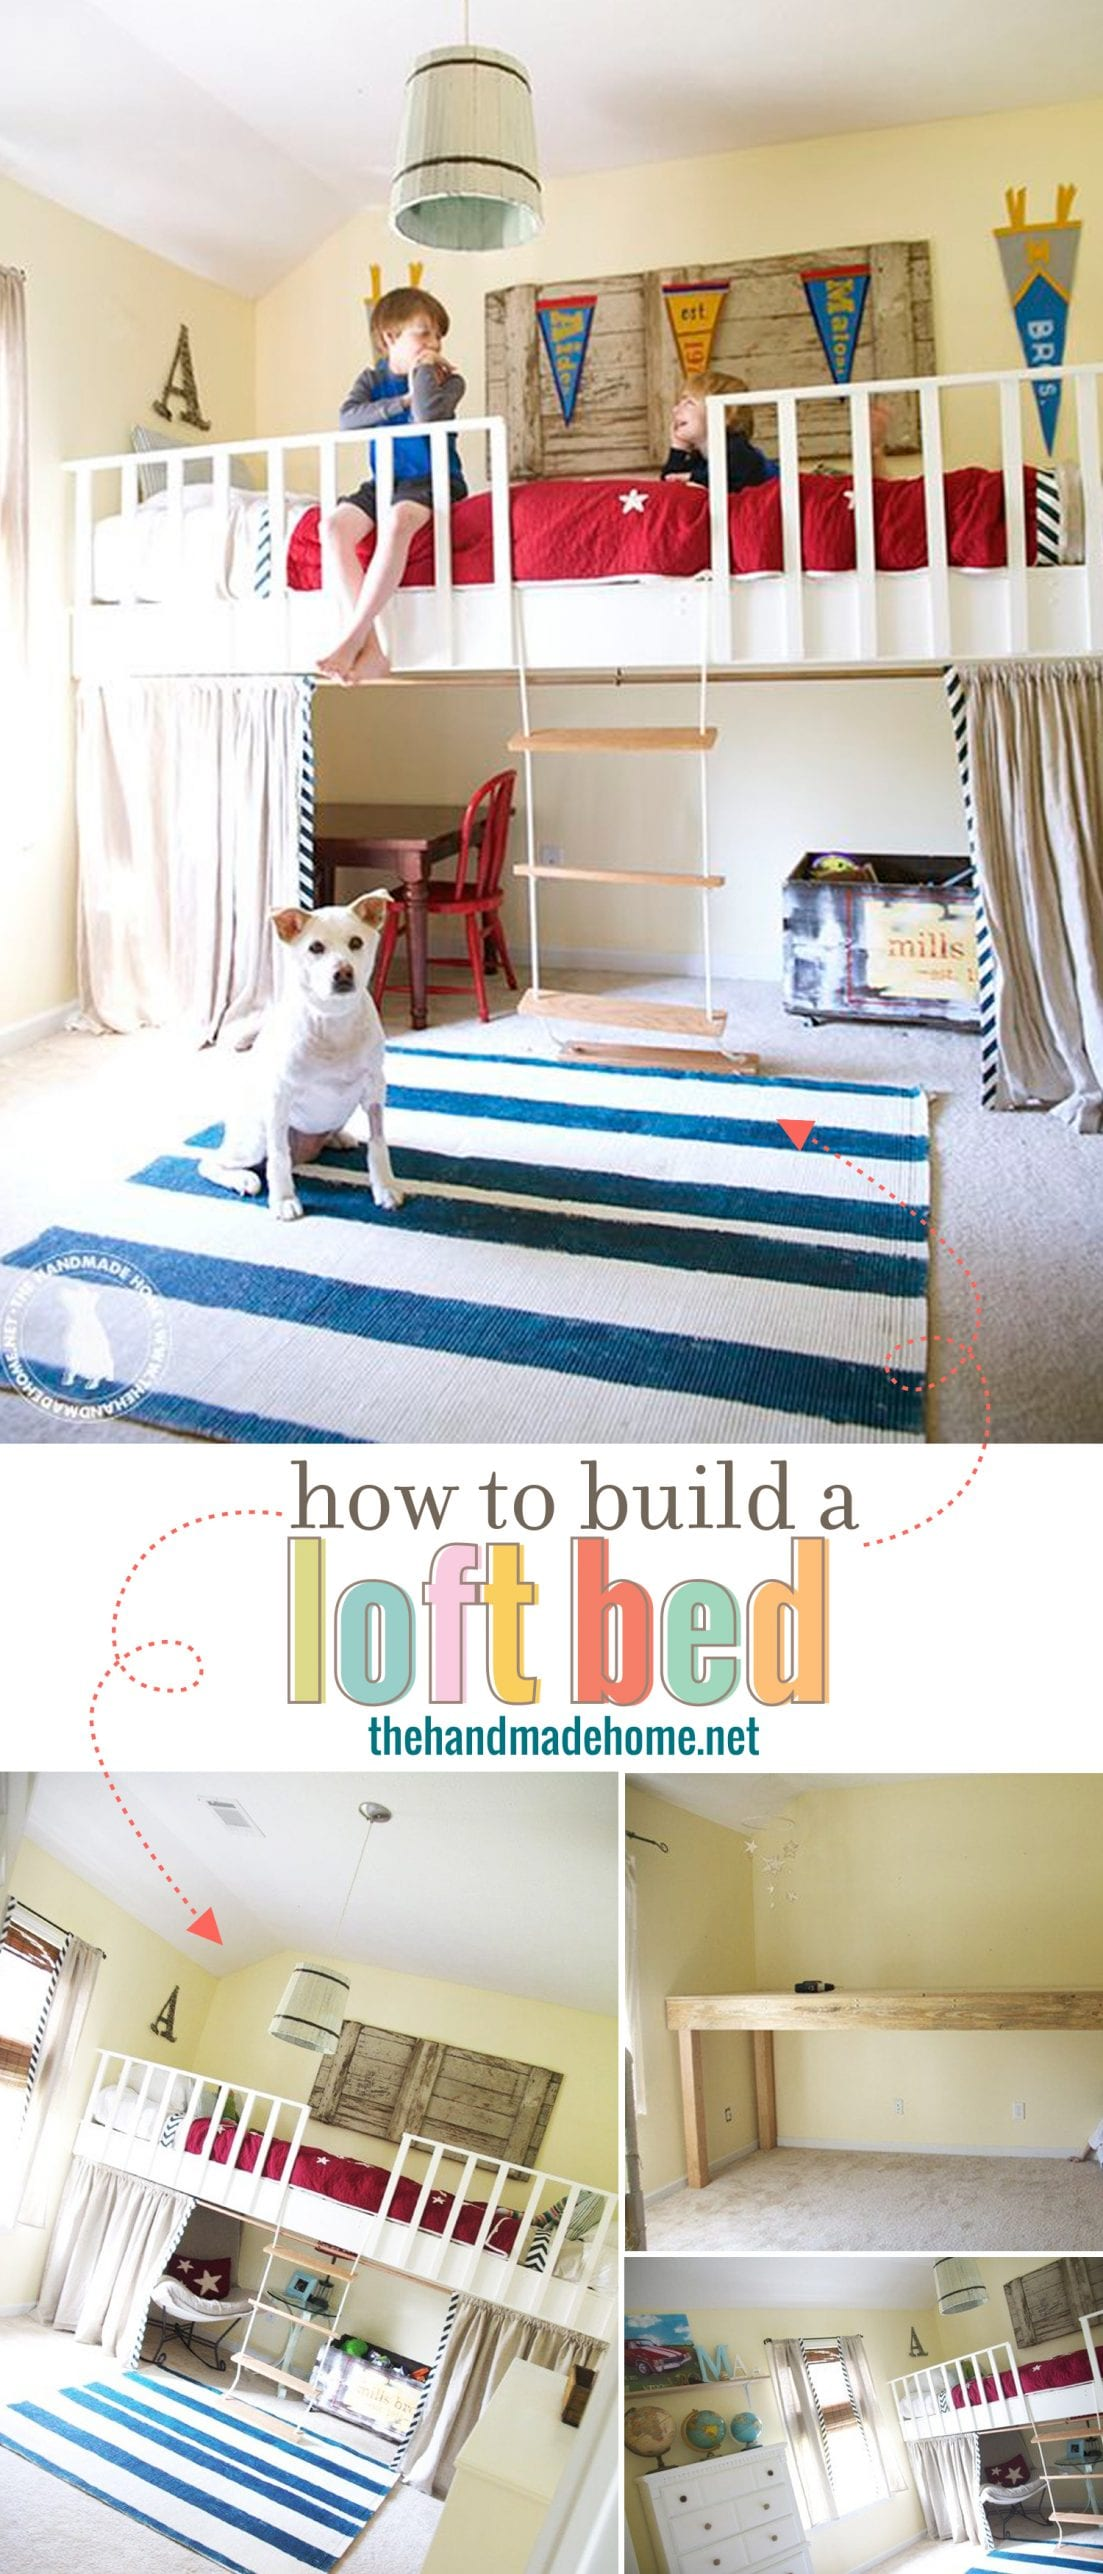 Fullsize Of How To Build A Loft Bed